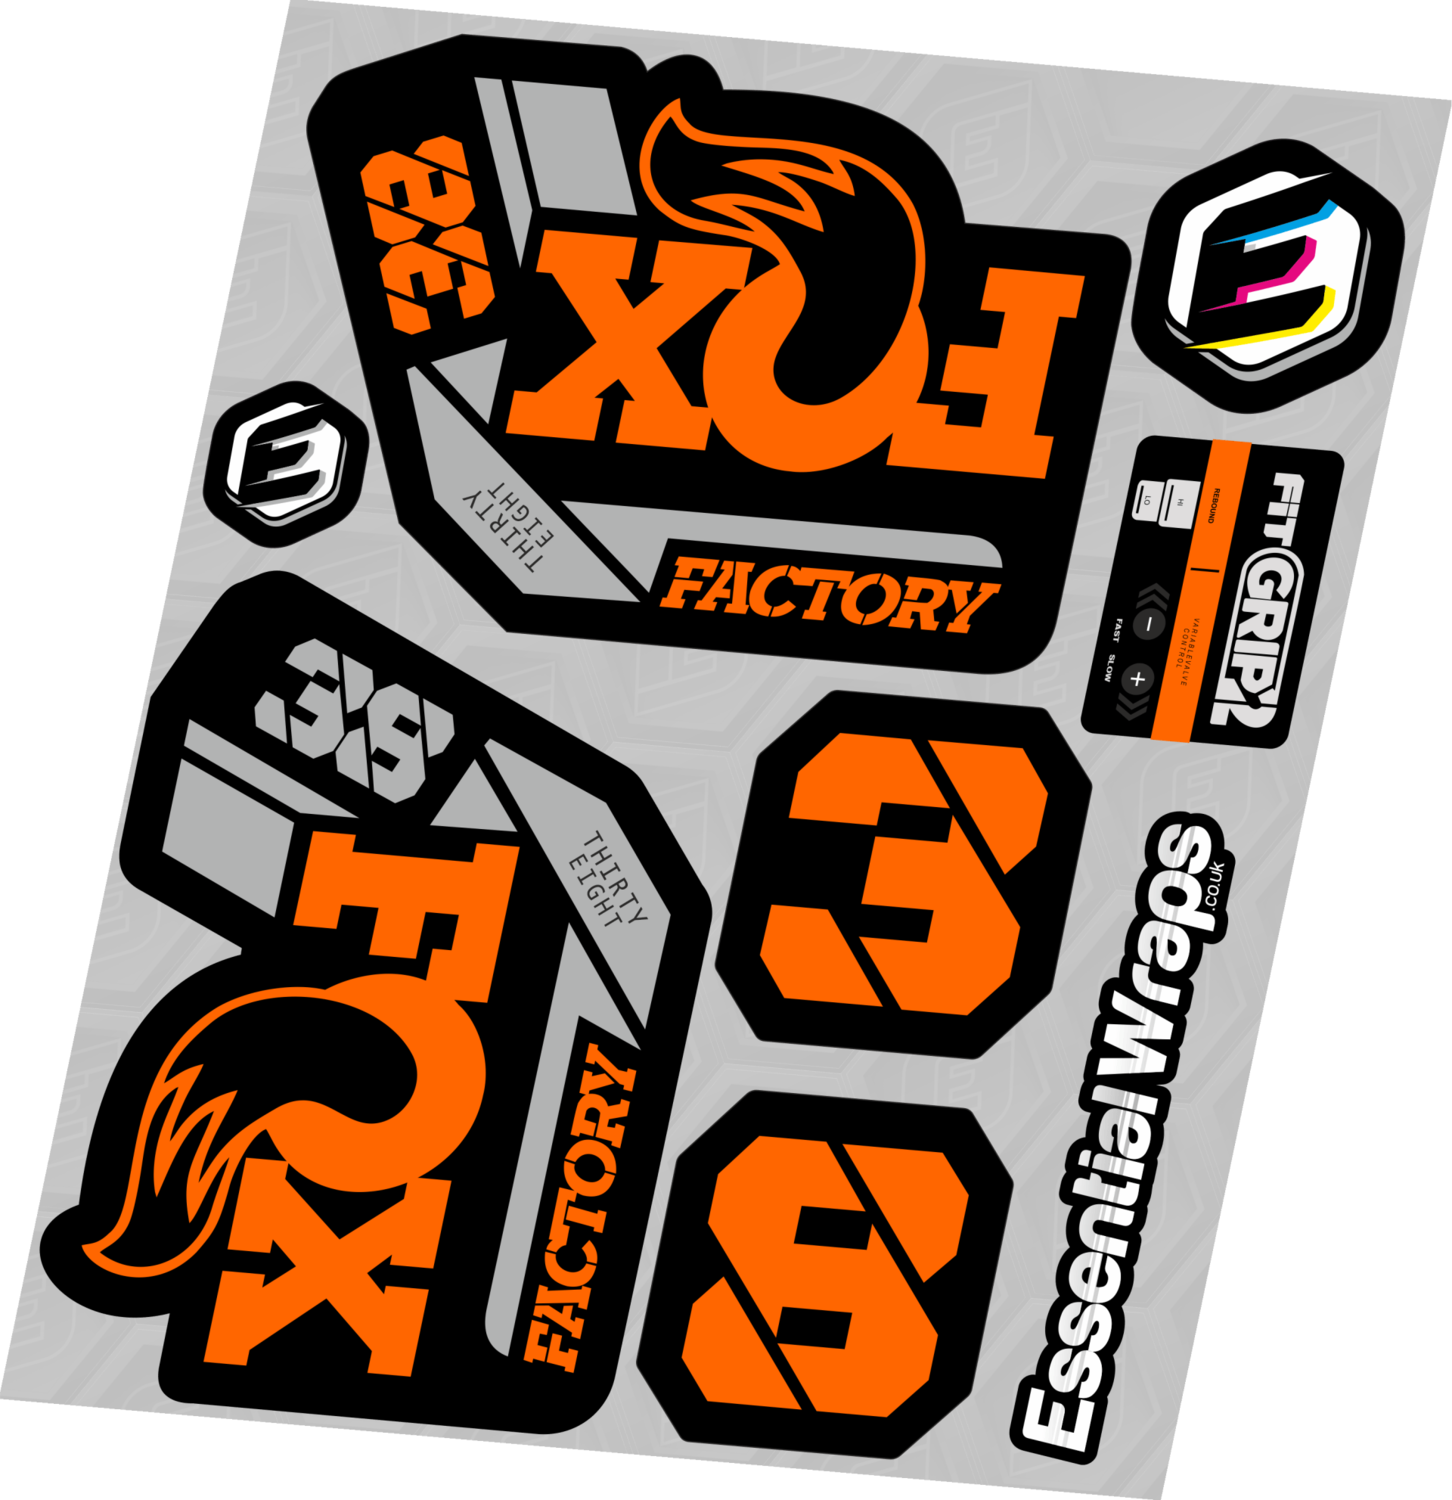 FOX 38 2021 Factory Forks Suspension Decals Sticker Set Adhesive Camo